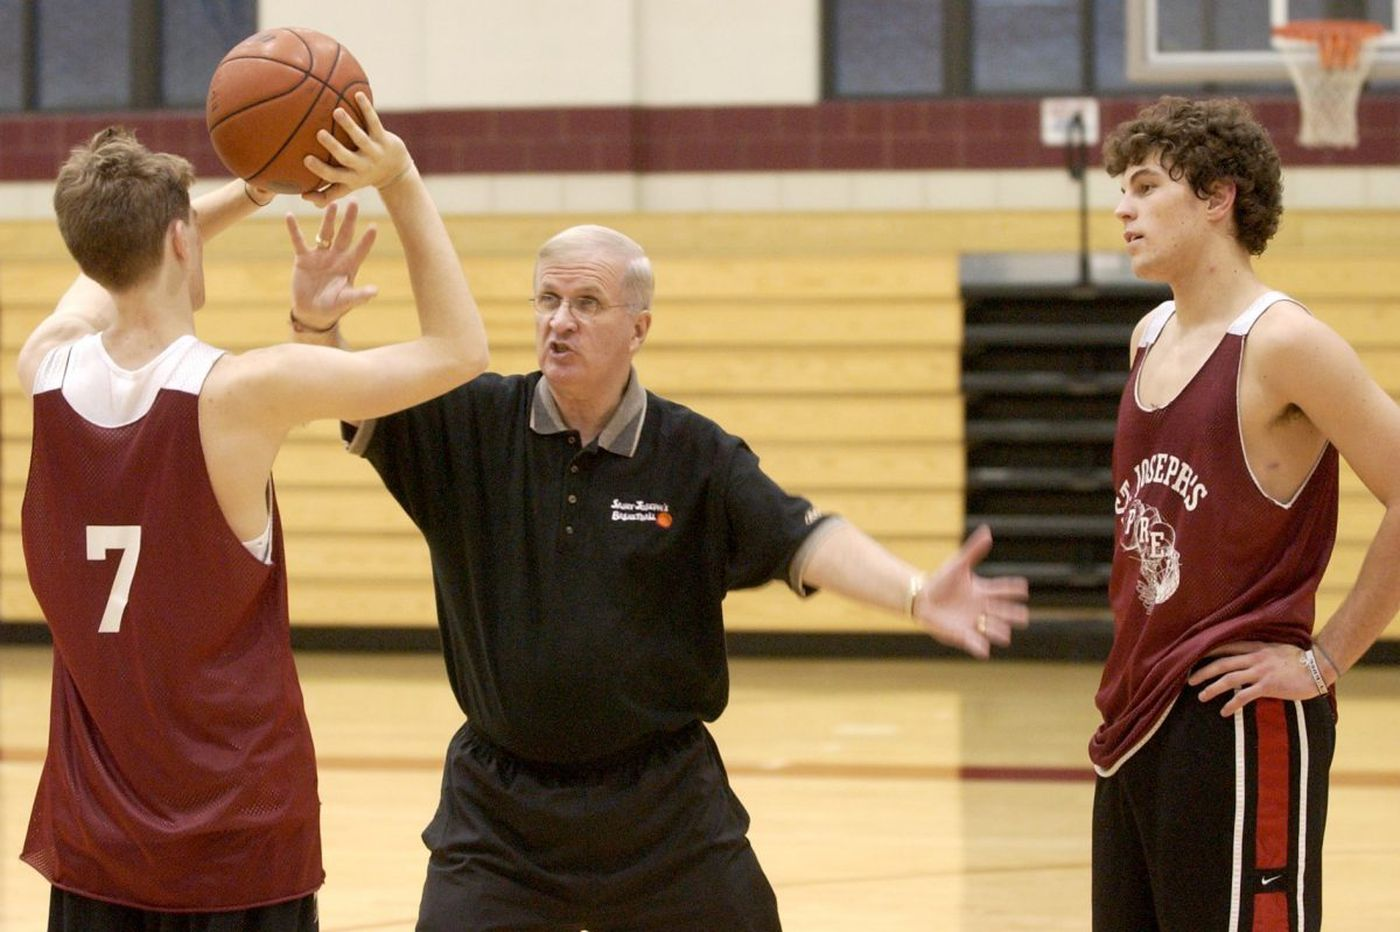 PHOTO GALLERY: Speedy Morris goes for 1,000 wins